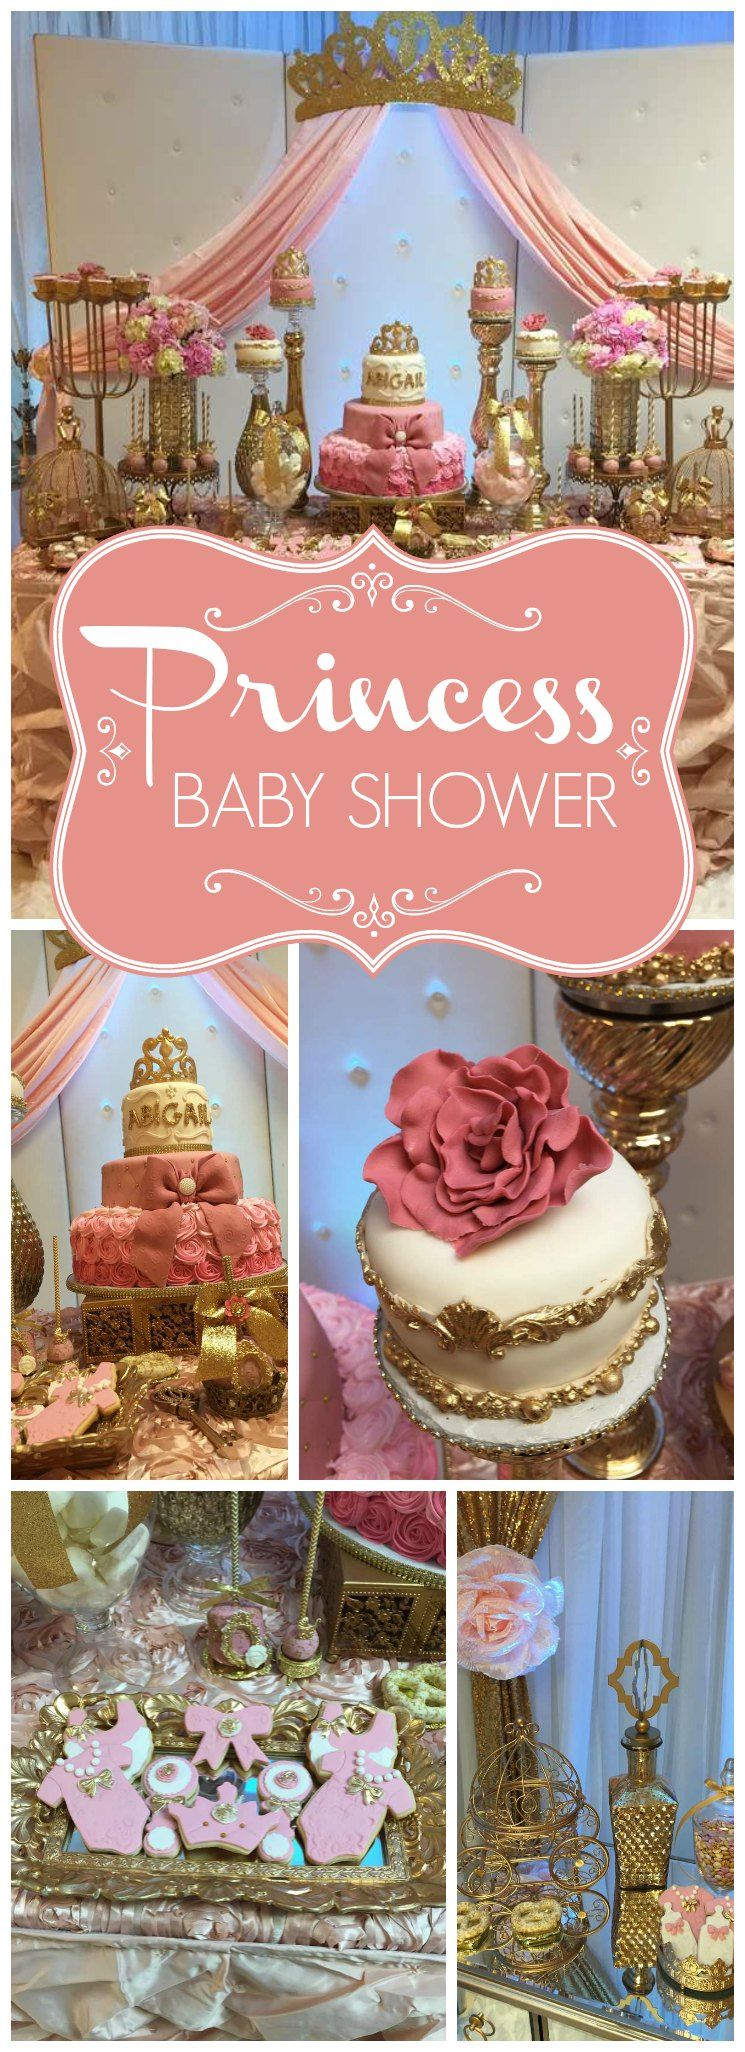 Such A Pretty Princess Baby Shower Today